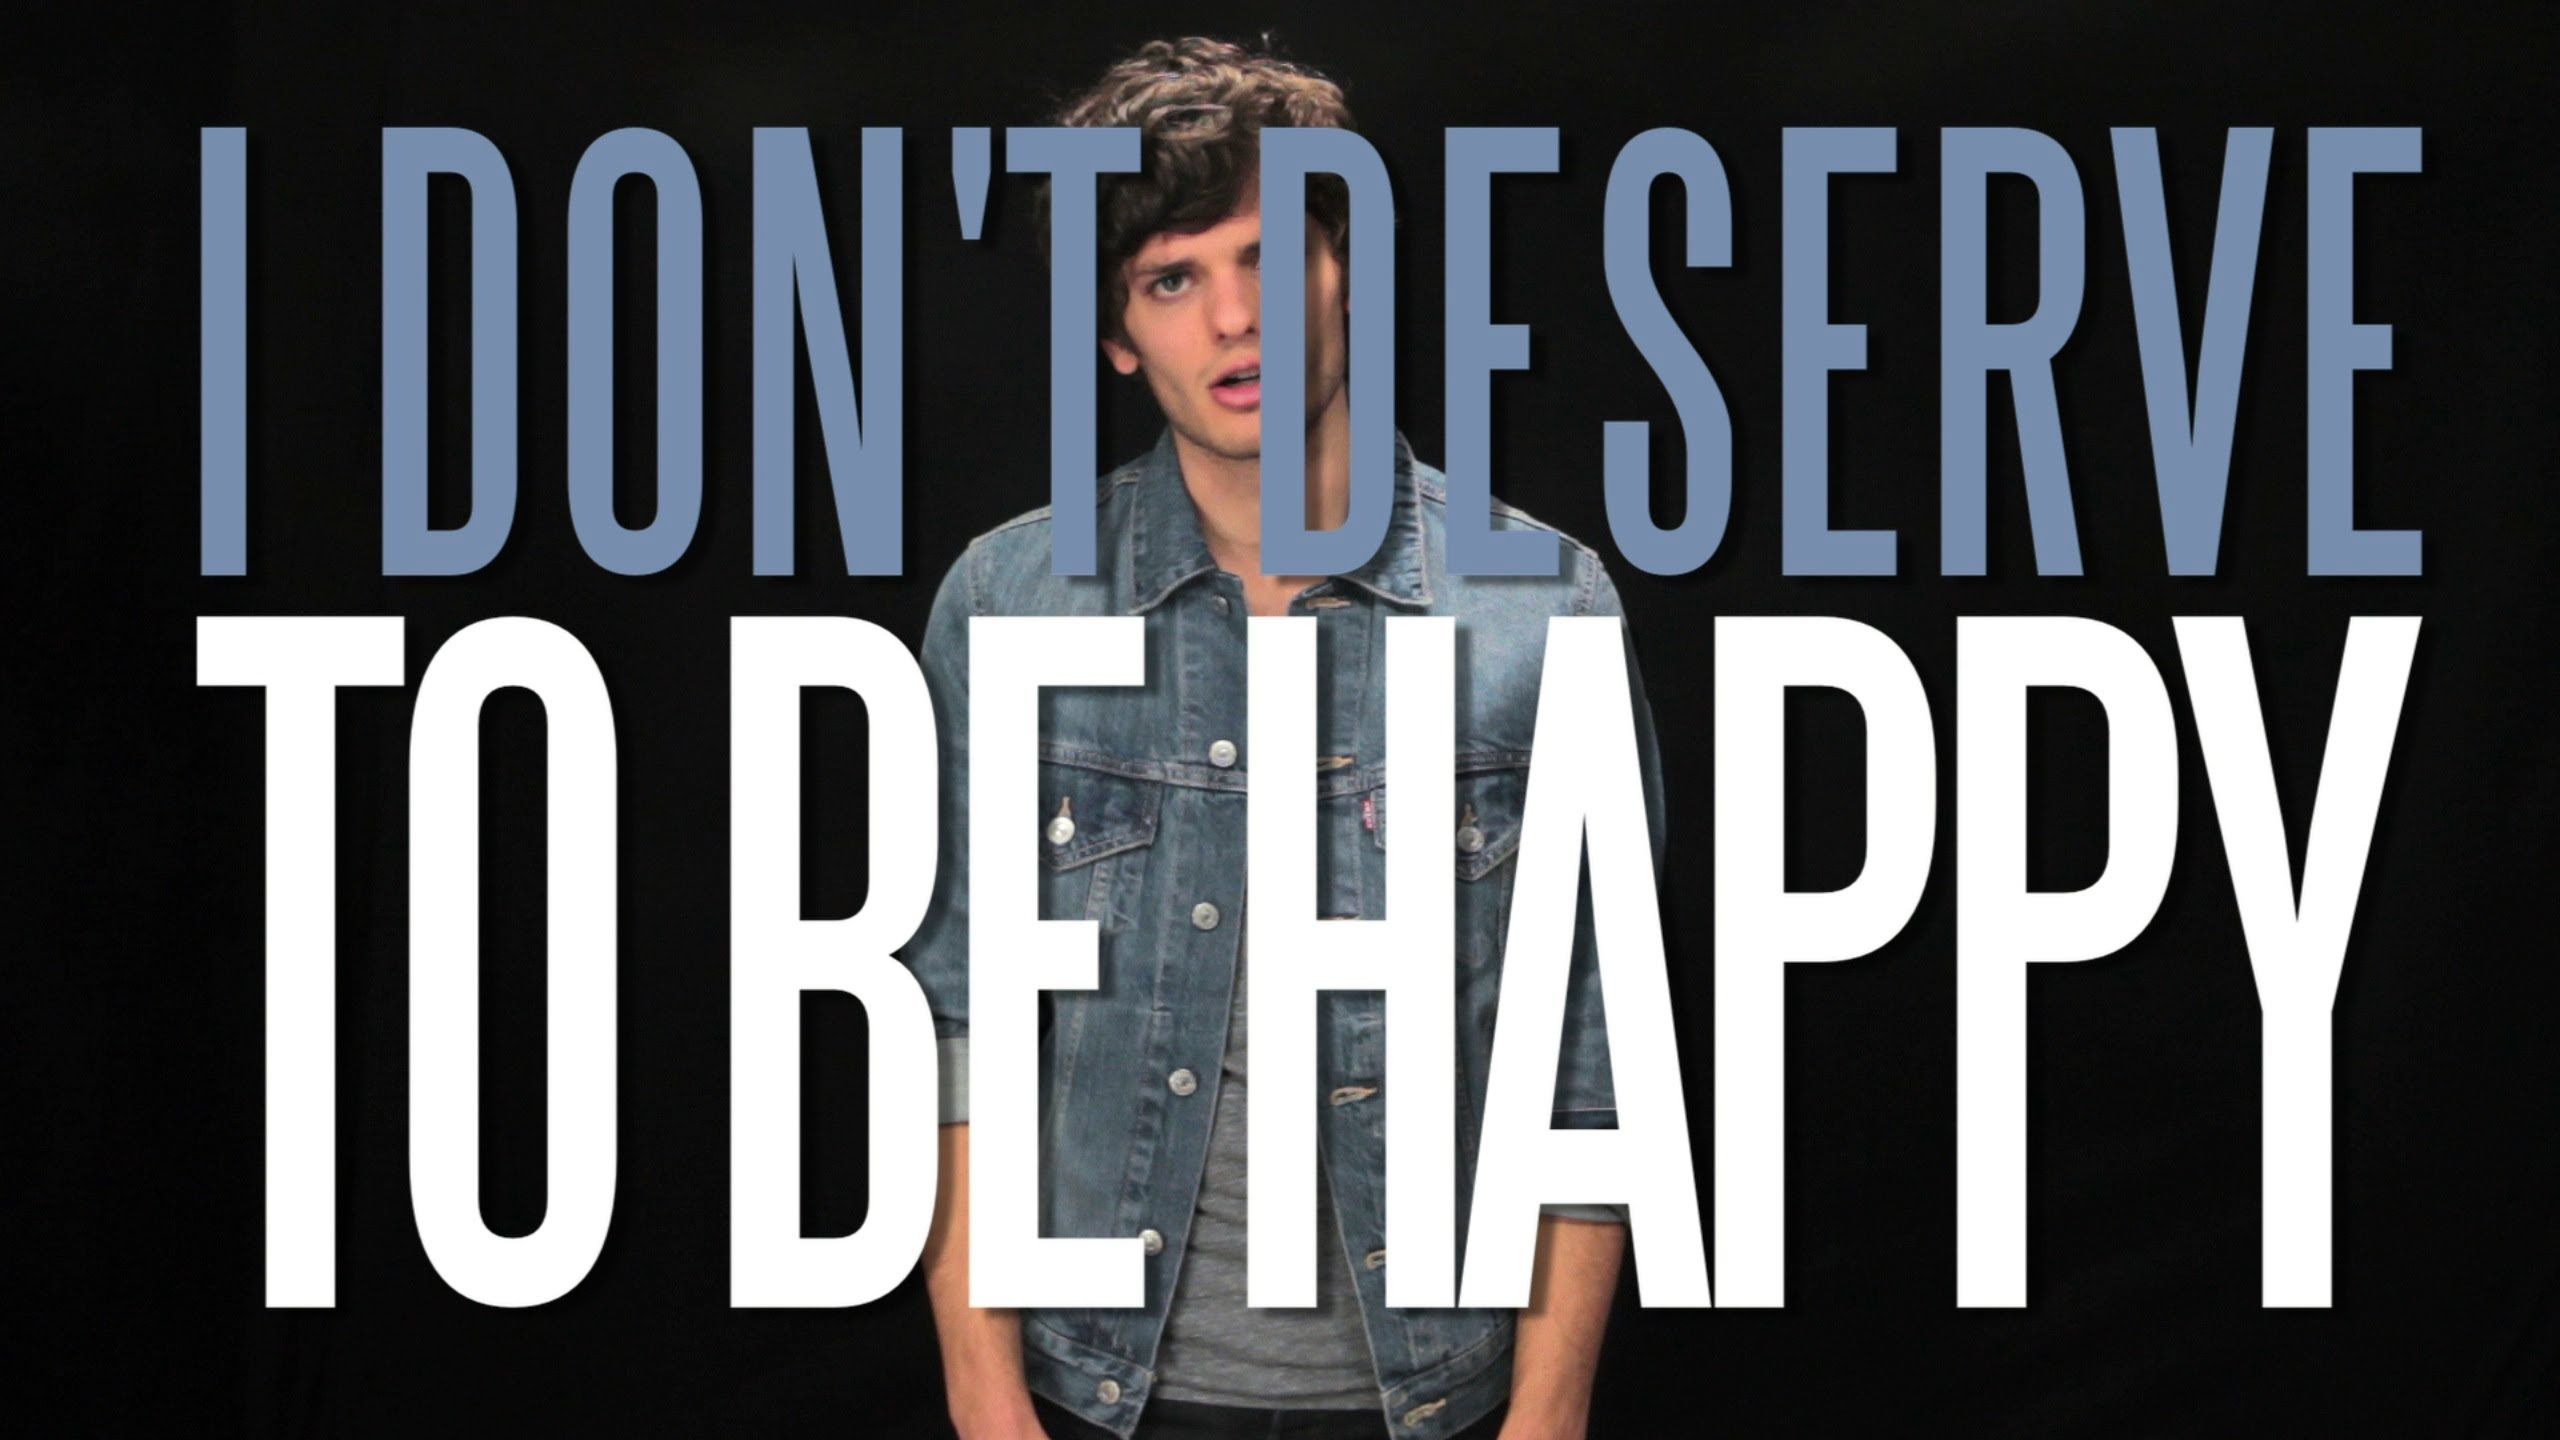 I Don T Deserve To Be Happy